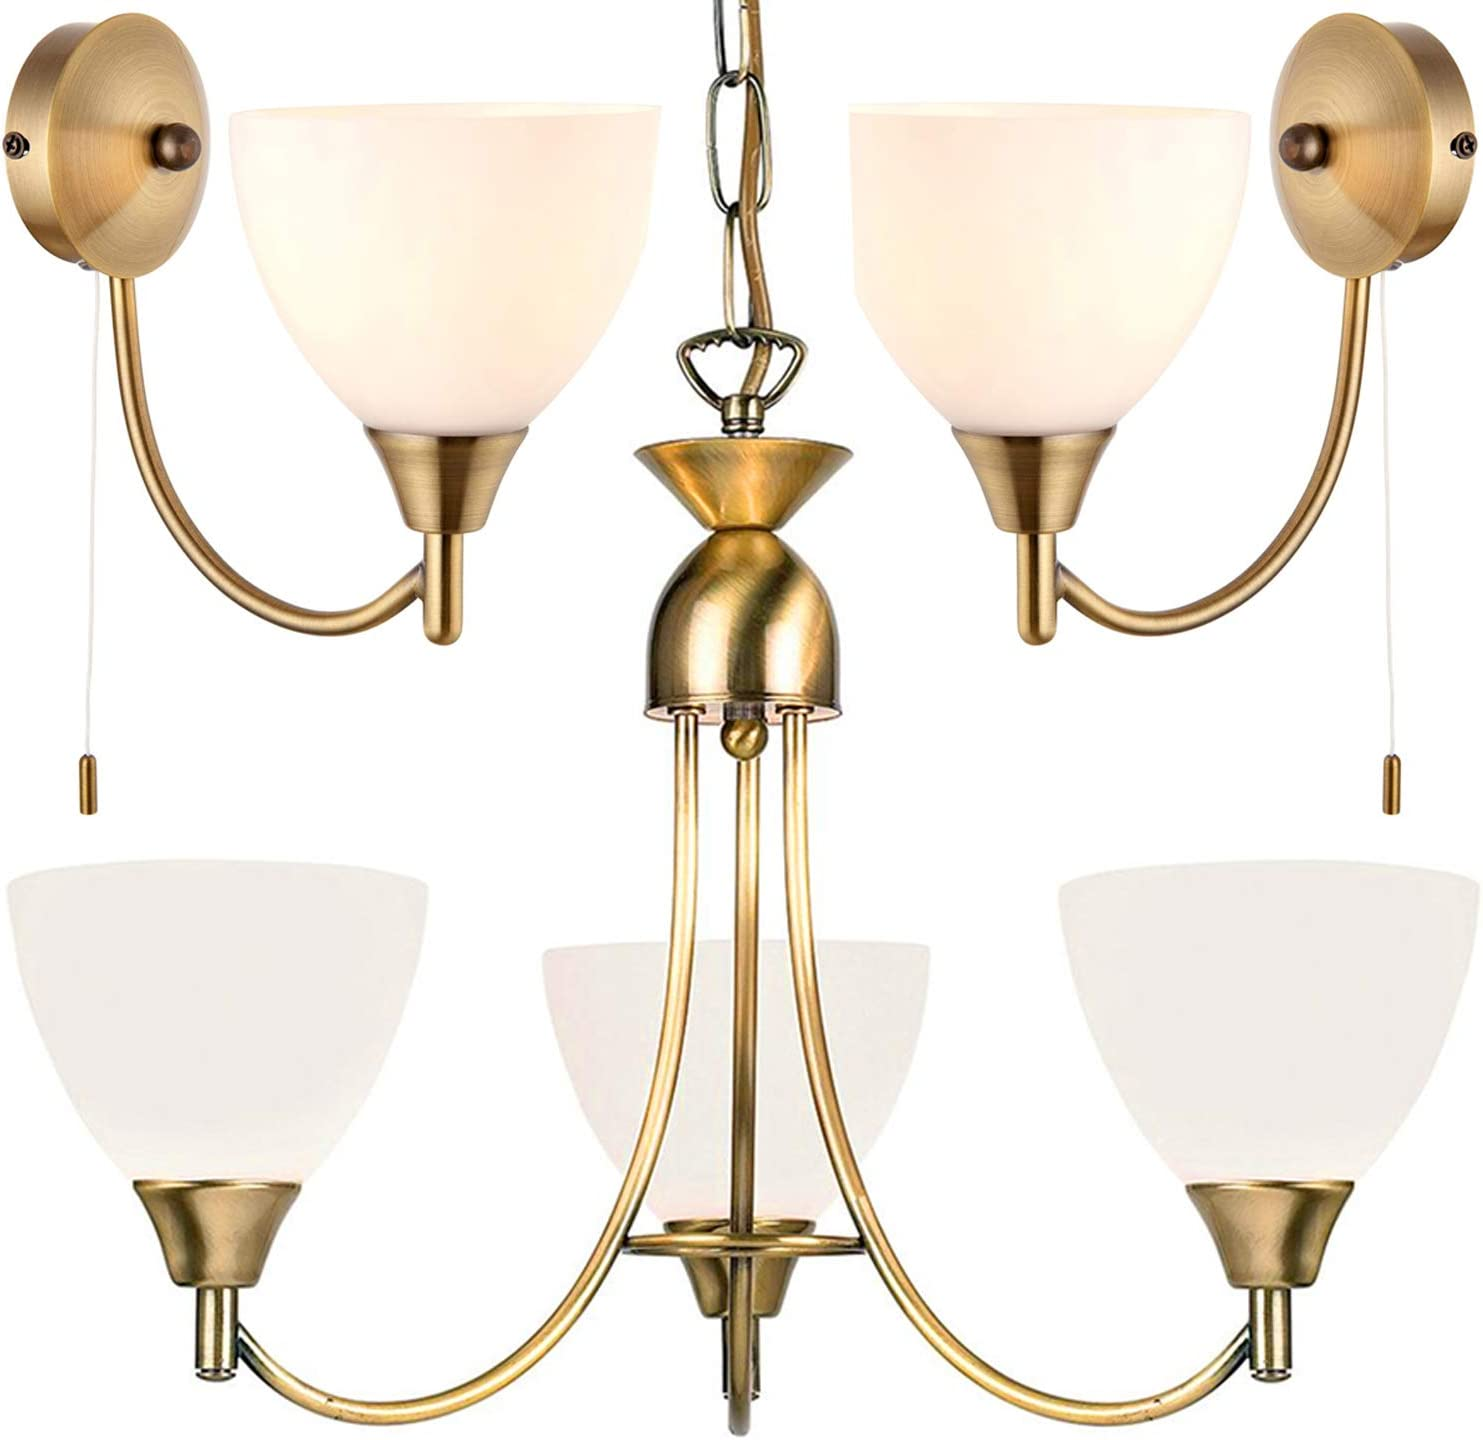 Flush Hanging 3 Bulb Ceiling 2x Wall Light Pack Antique Brass Frosted Glass Shade Matching Indoor Lamp Fittings Modern Vintage Lounge Bedroom Lighting Set Led Compatible Dimmable